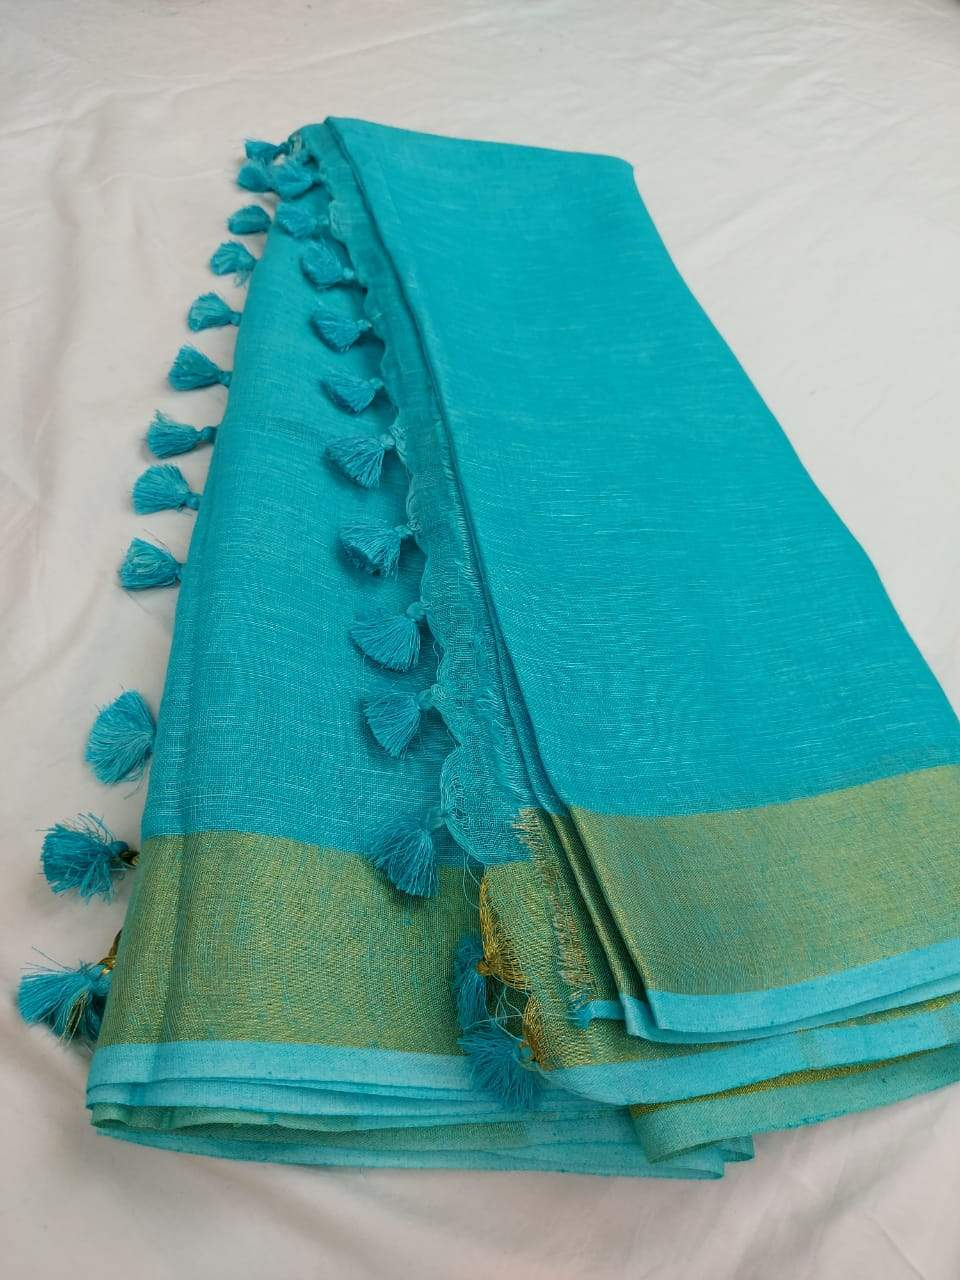 Pure Linen Saree Sky Blue,Best rates of line sarees in india, wholesale linen sarees online